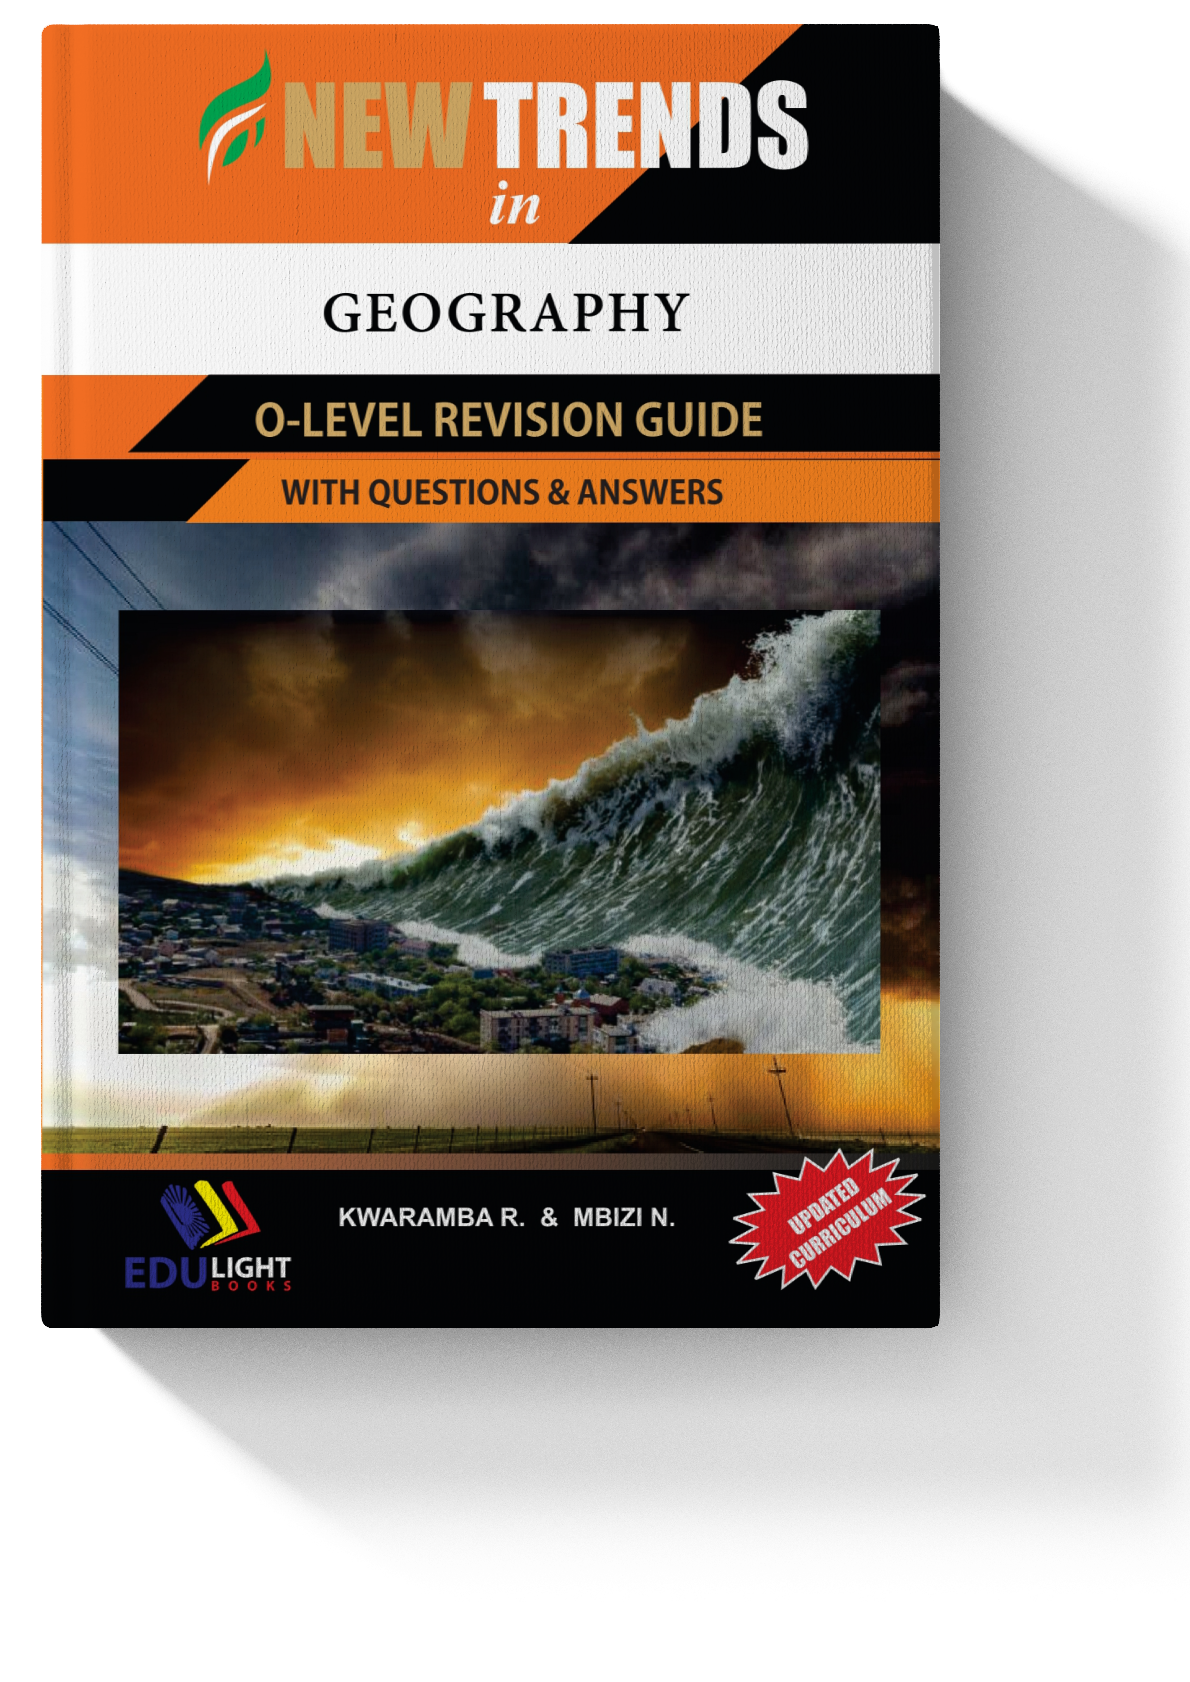 New Trends in Geography O Level Revision Guide